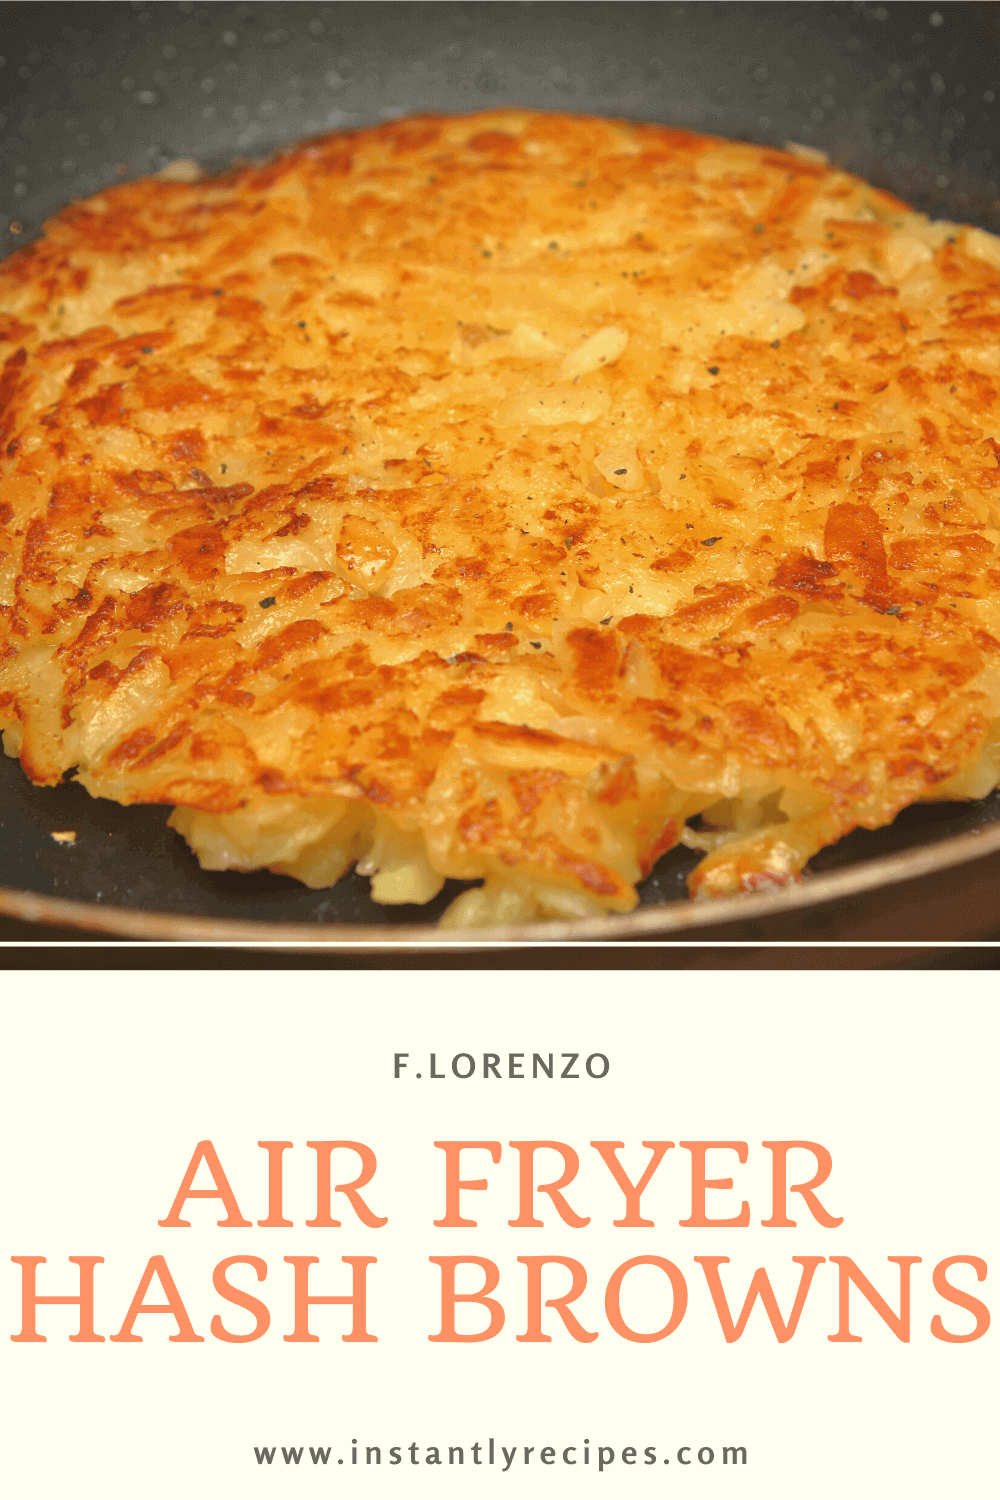 Air Fryer Hash Browns Recipe in 2020 Hashbrown recipes